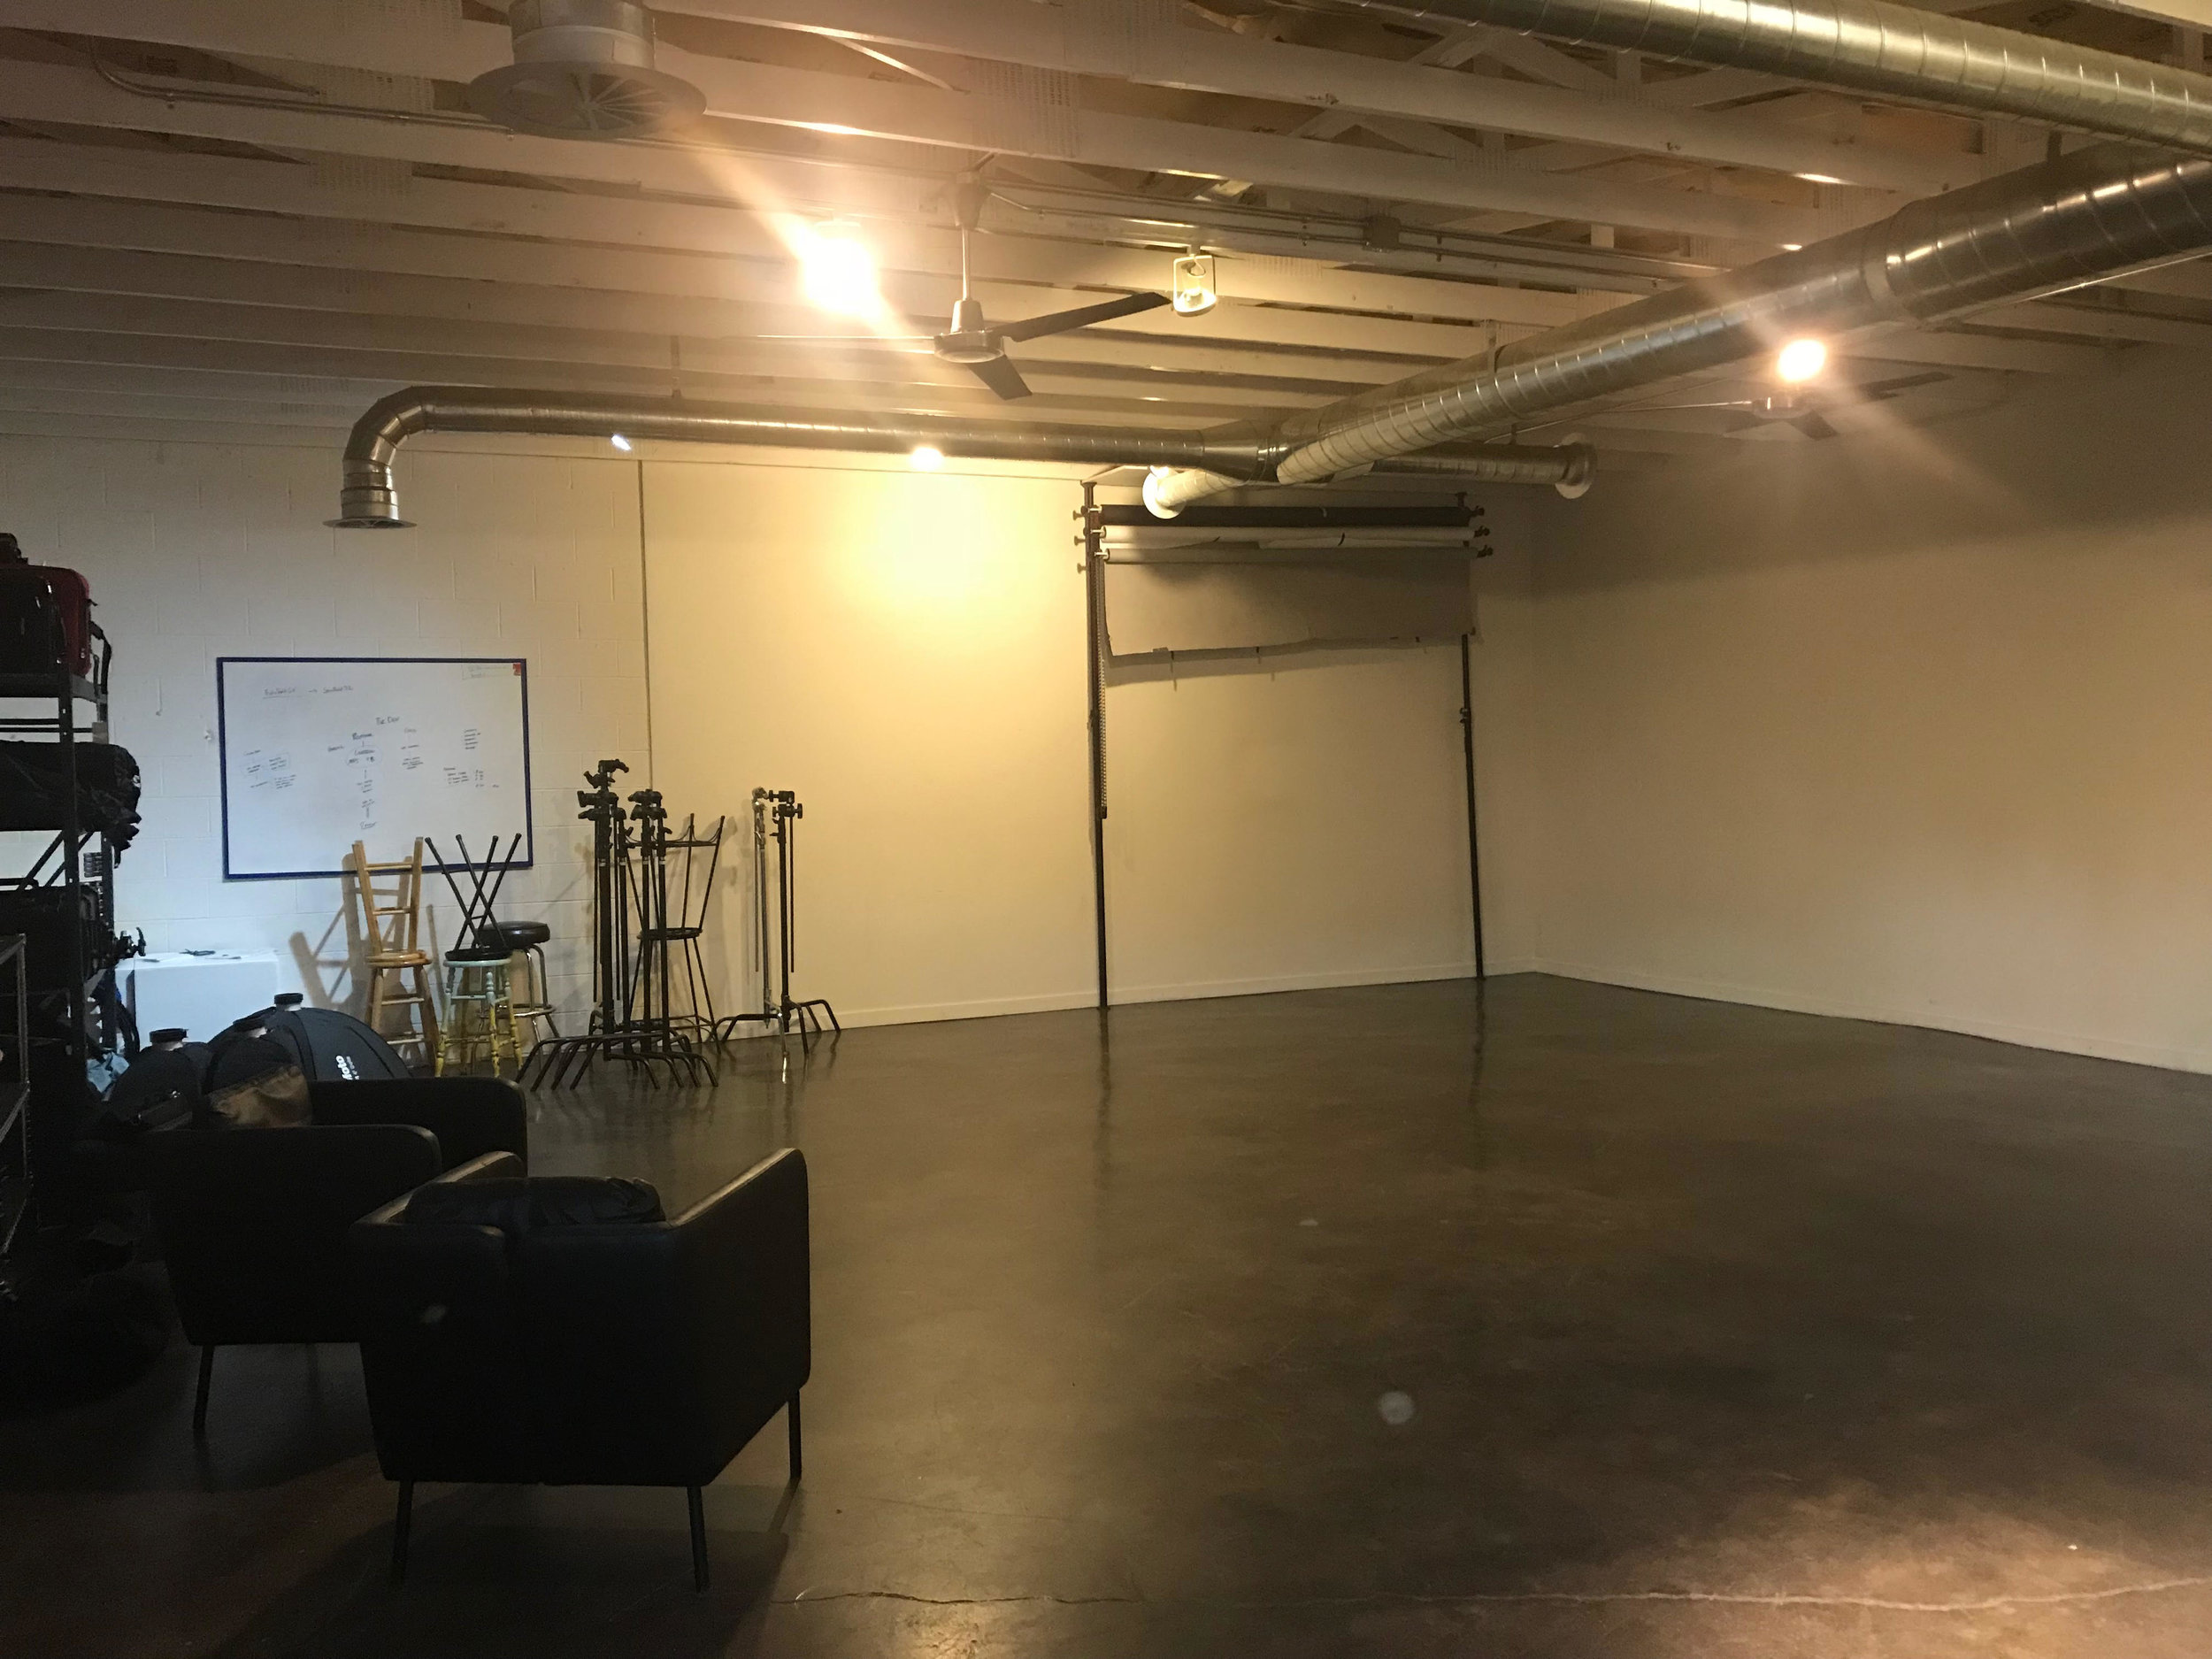 The main studio space, complete with floors, walls, and comfy chairs.